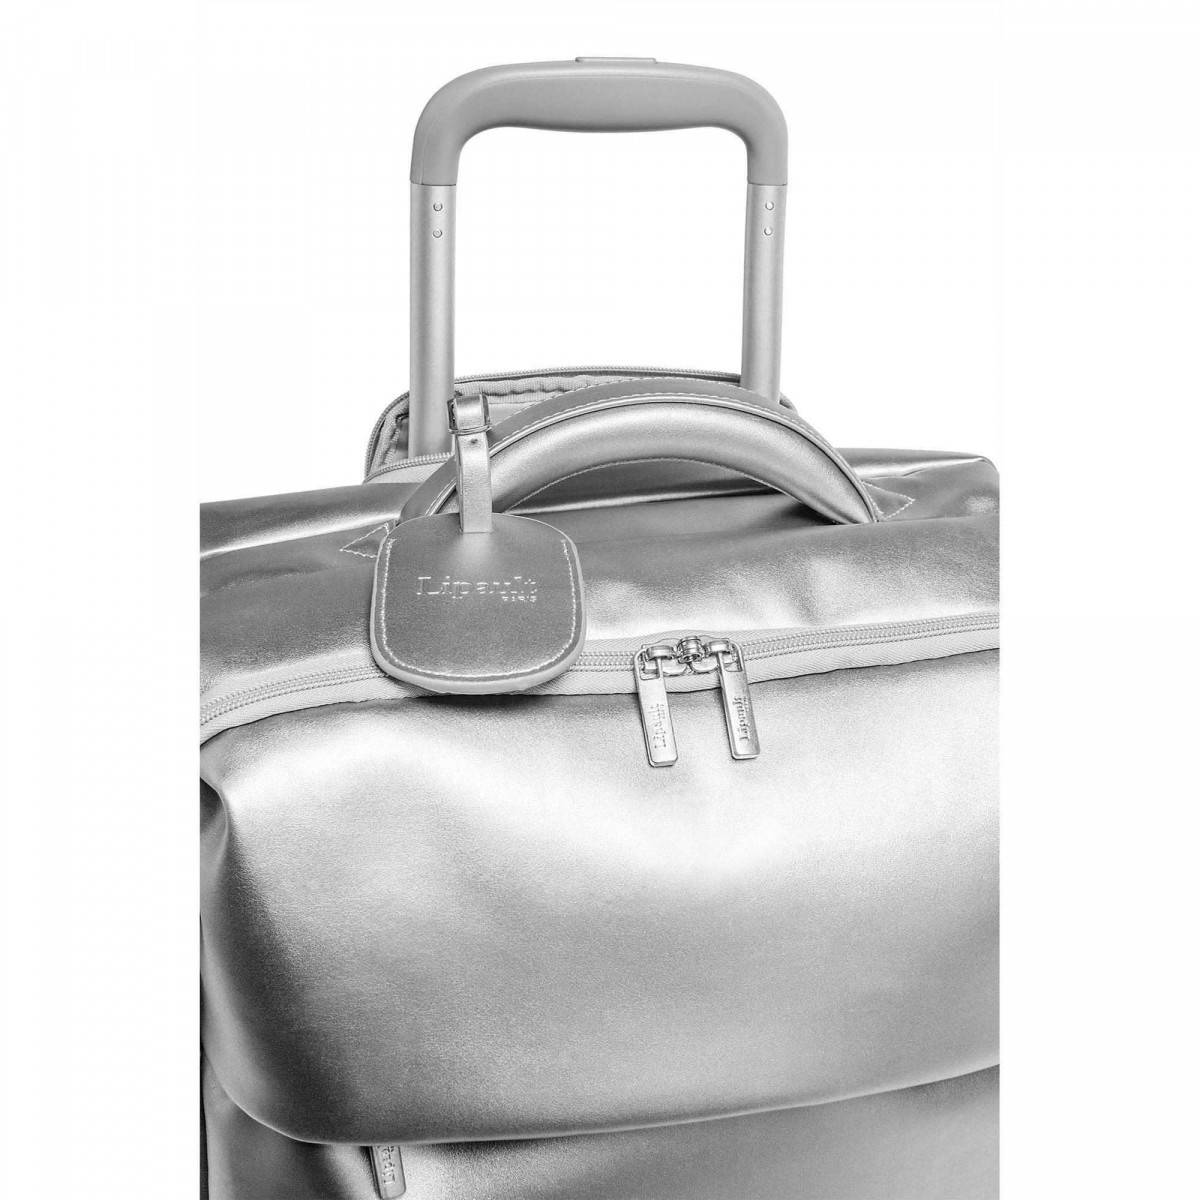 225489fa9 Lipault Miss Plume 55/20 Spinner Carry-On Luggage. Model: 86561. Be the  first to review this product